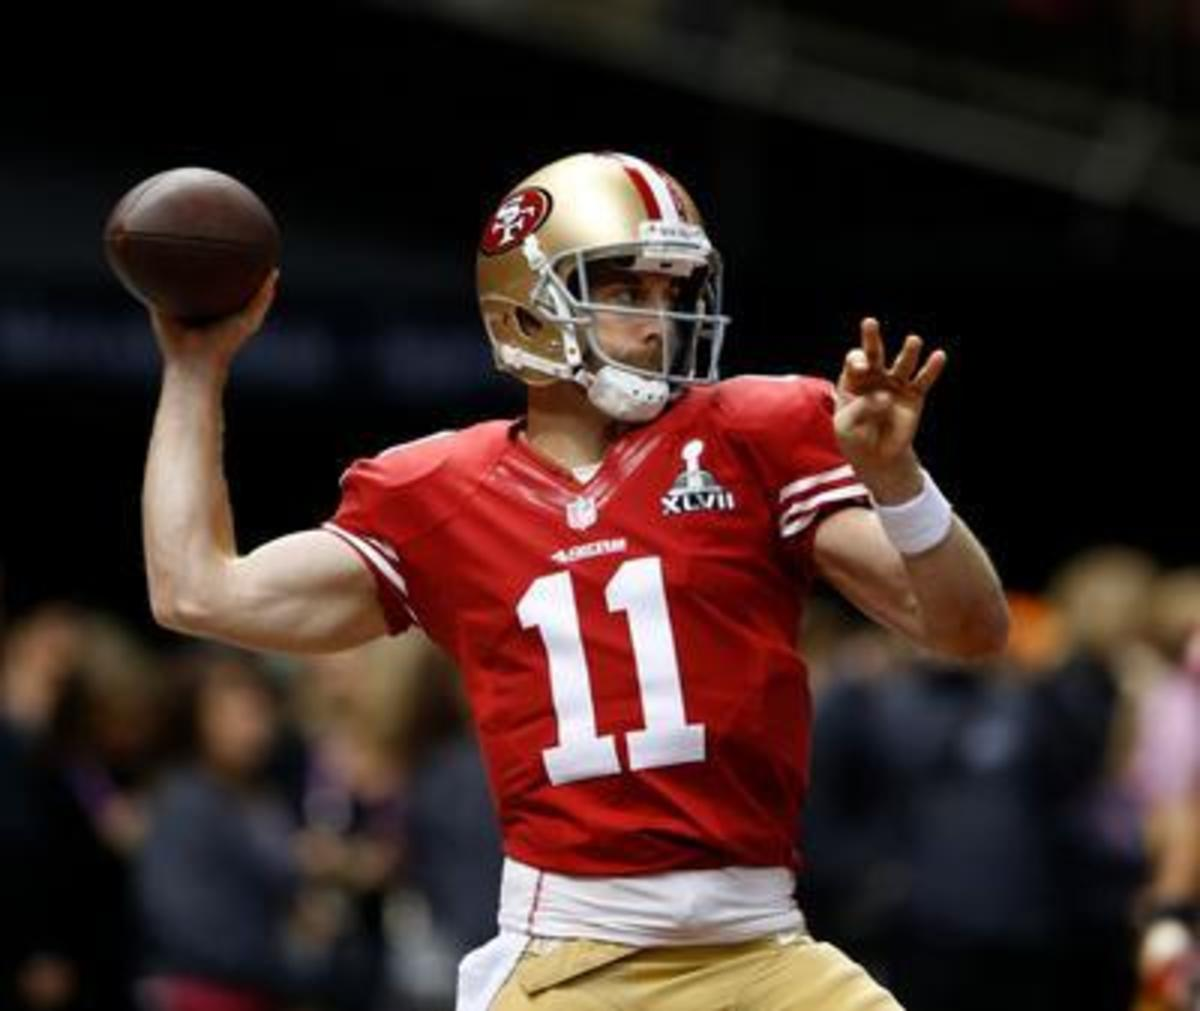 San Francisco 49ers quarterback Alex Smith (11) warms up before the start of Super Bowl XLVII, Sunday, Feb. 3, 2013, at the Superdome in New Orleans.